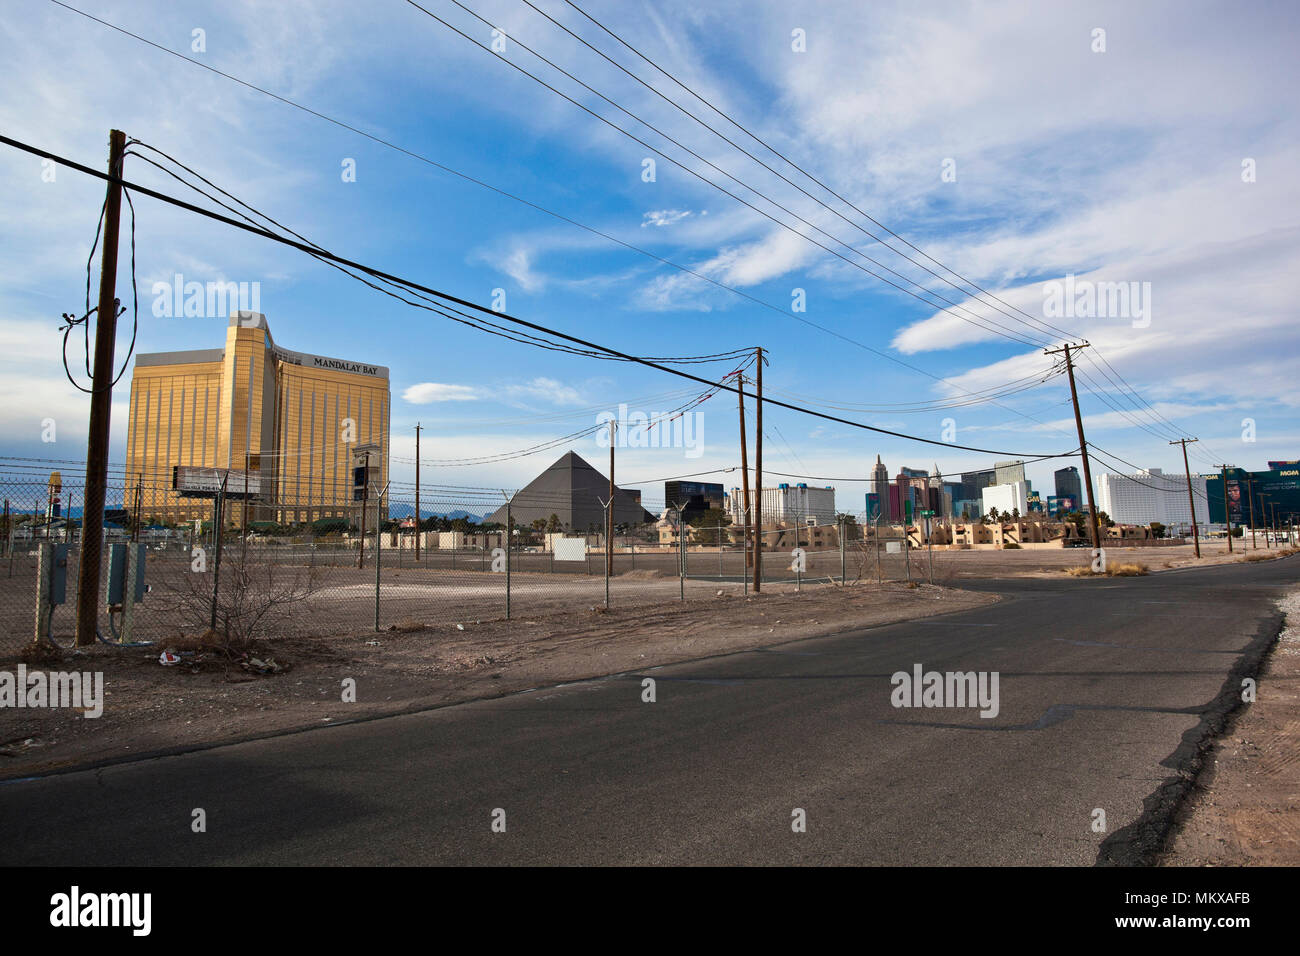 'The Strip' in Las Vegas as seen from a less glamorous part of town - Stock Image